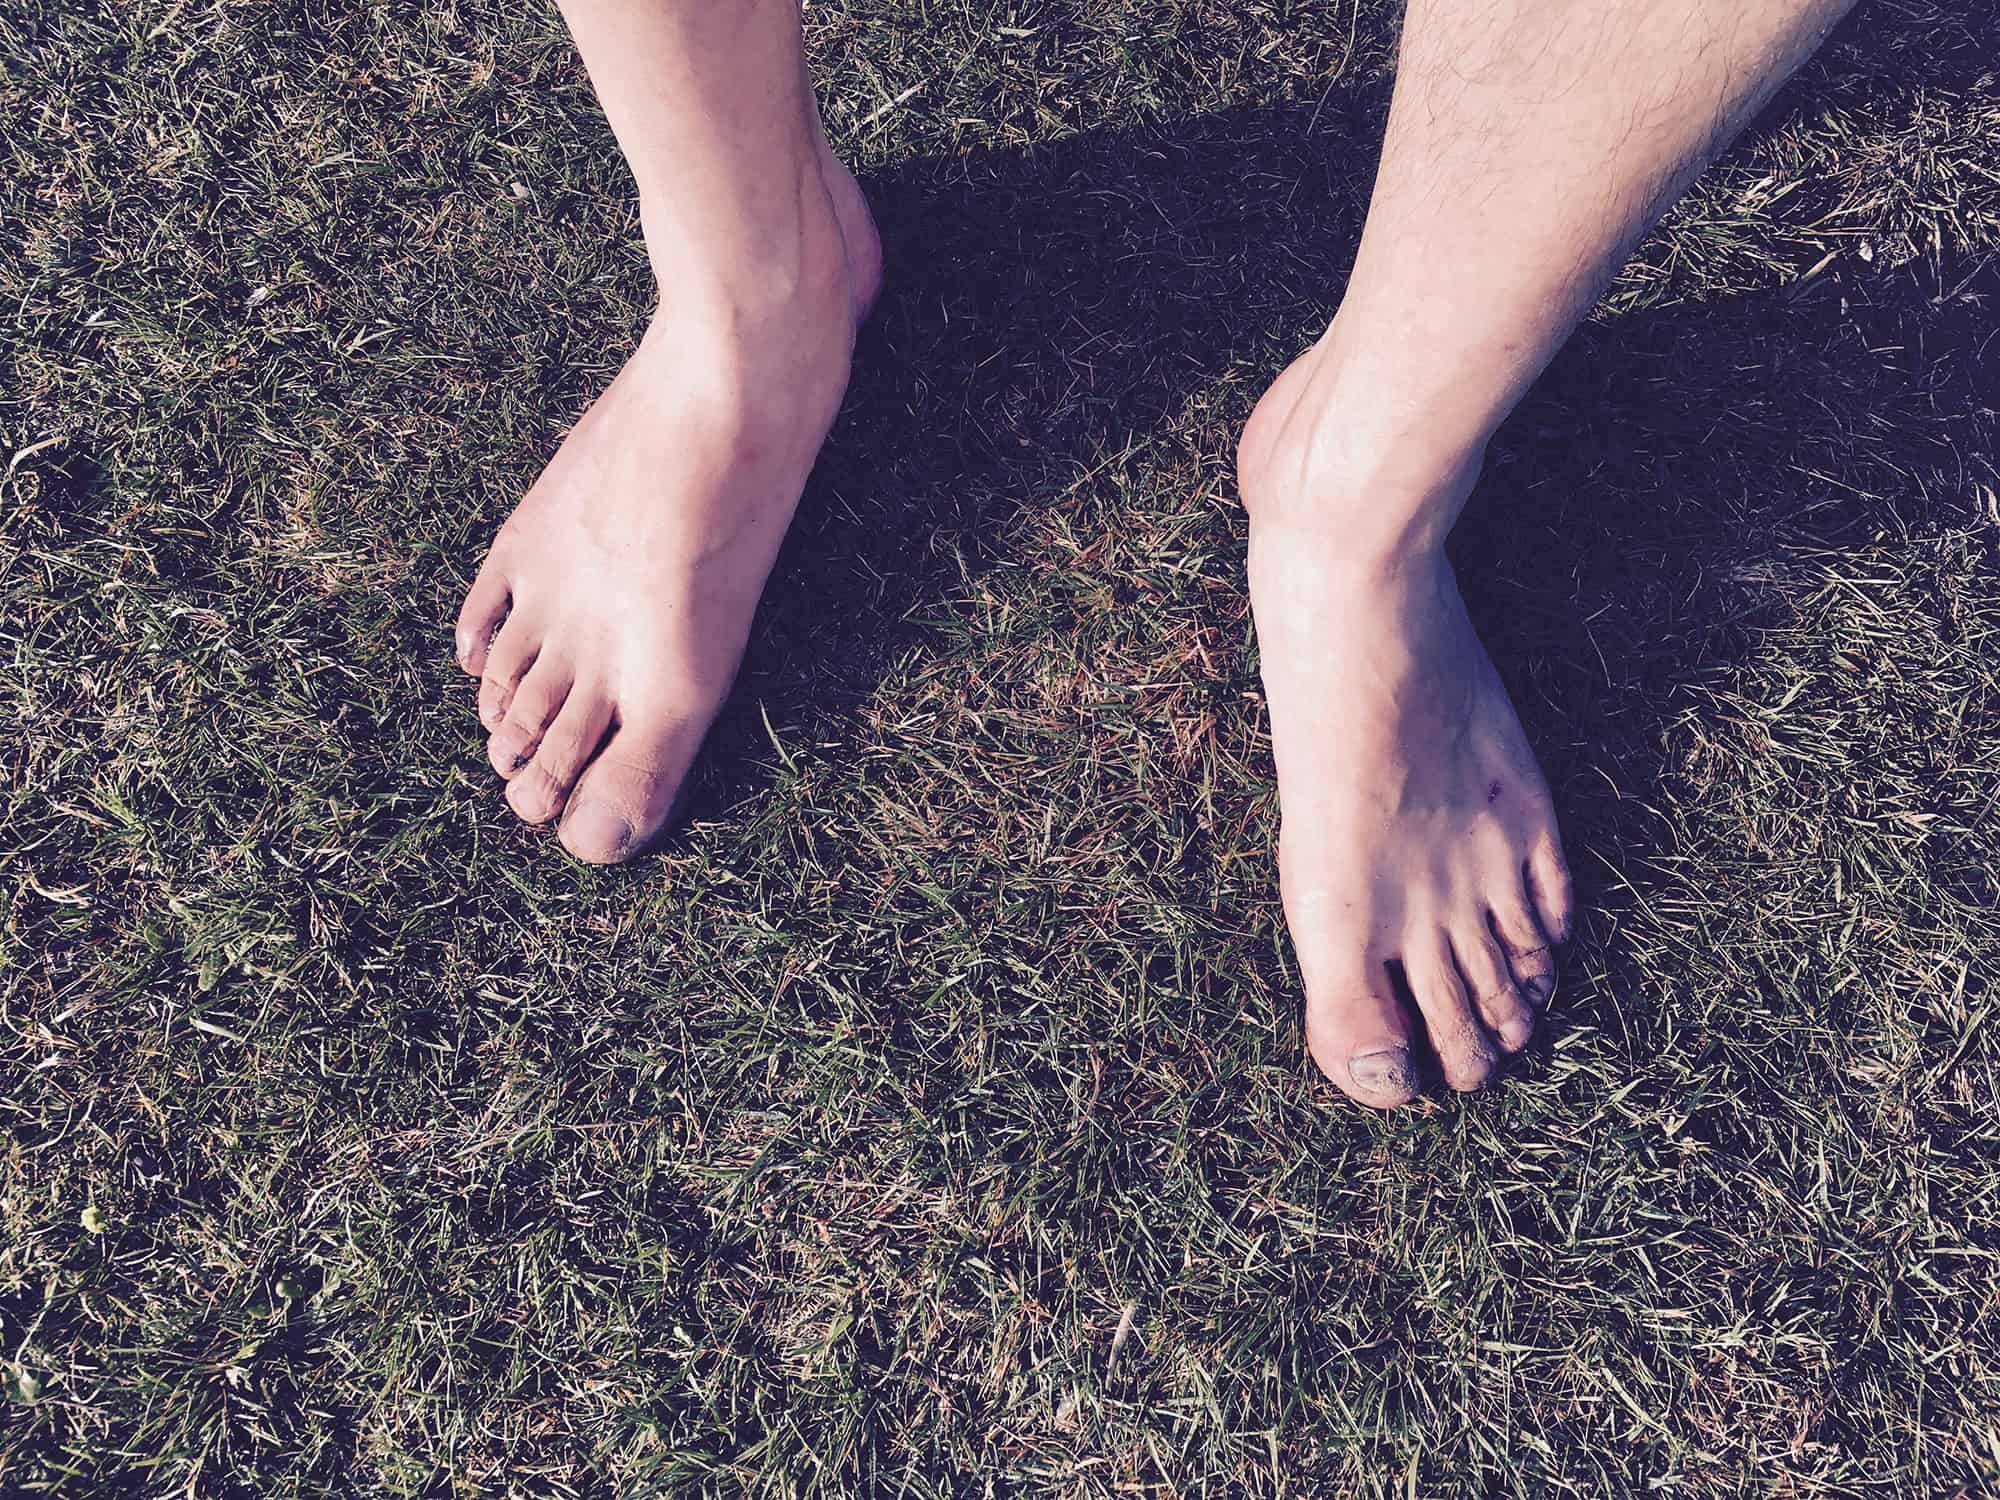 Study Shows: Grounding Improves Inflammation & Blood Flow